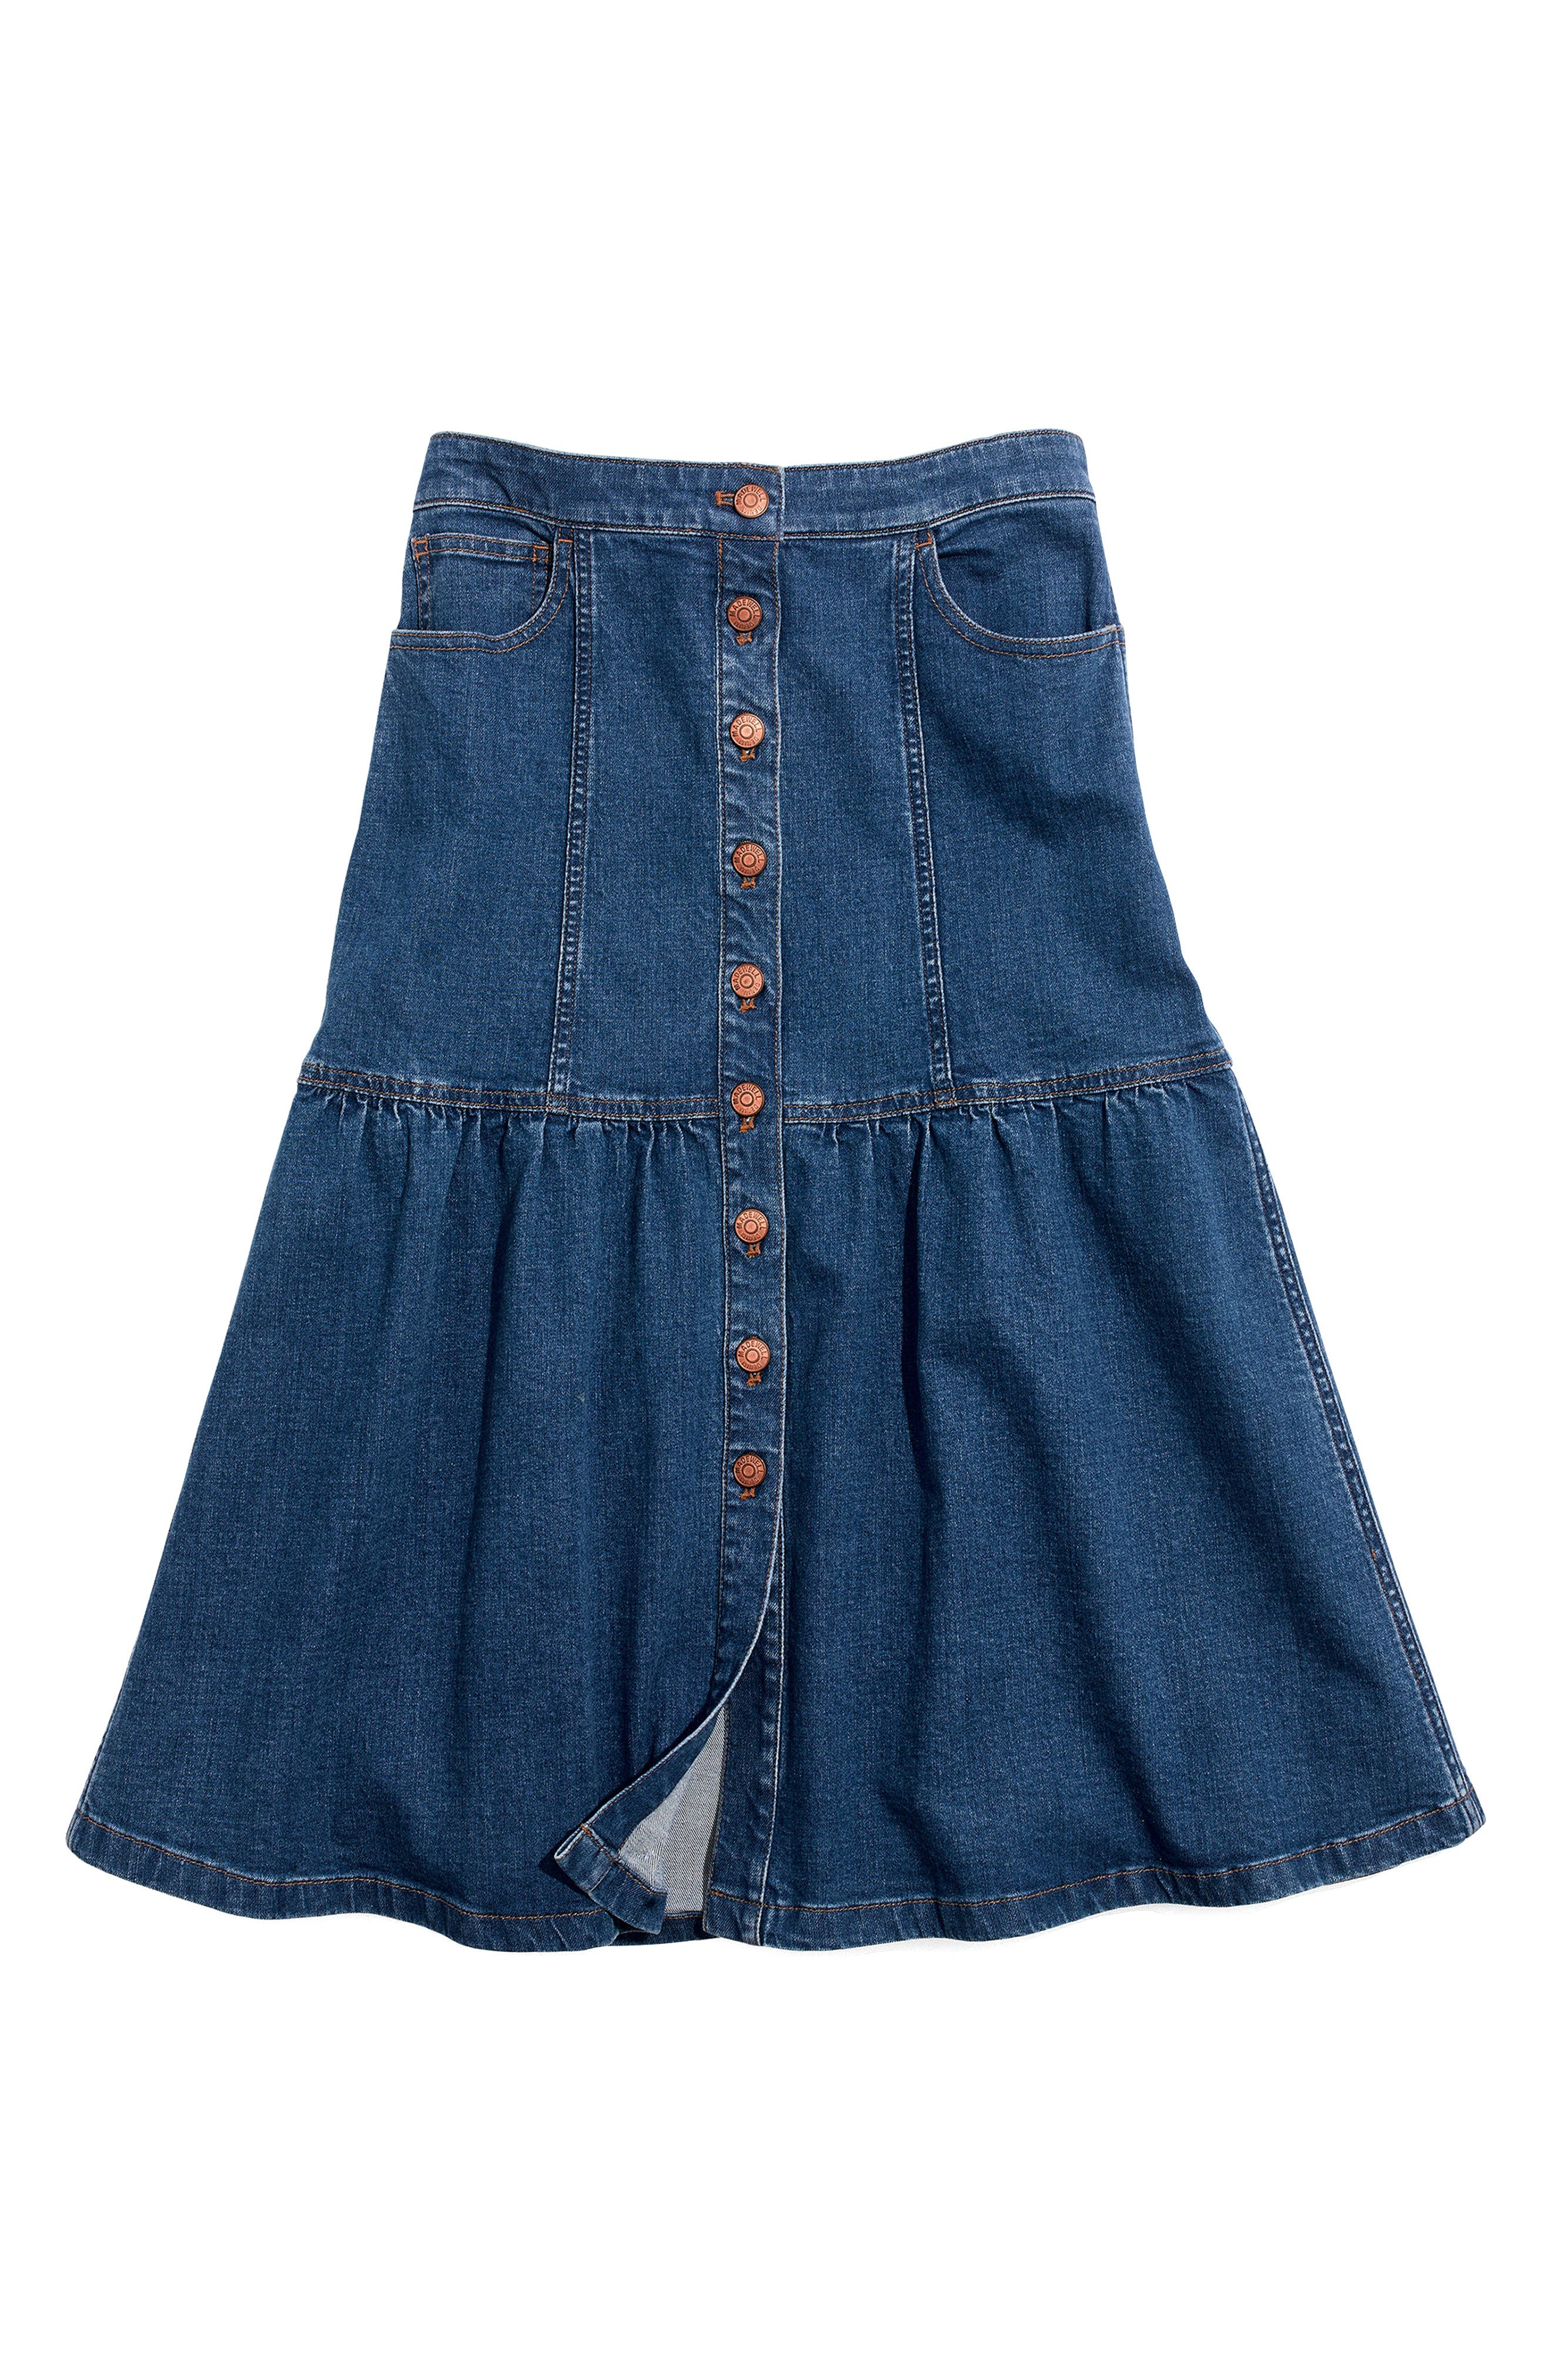 Bayview Tiered Denim Midi Skirt,                             Alternate thumbnail 3, color,                             400